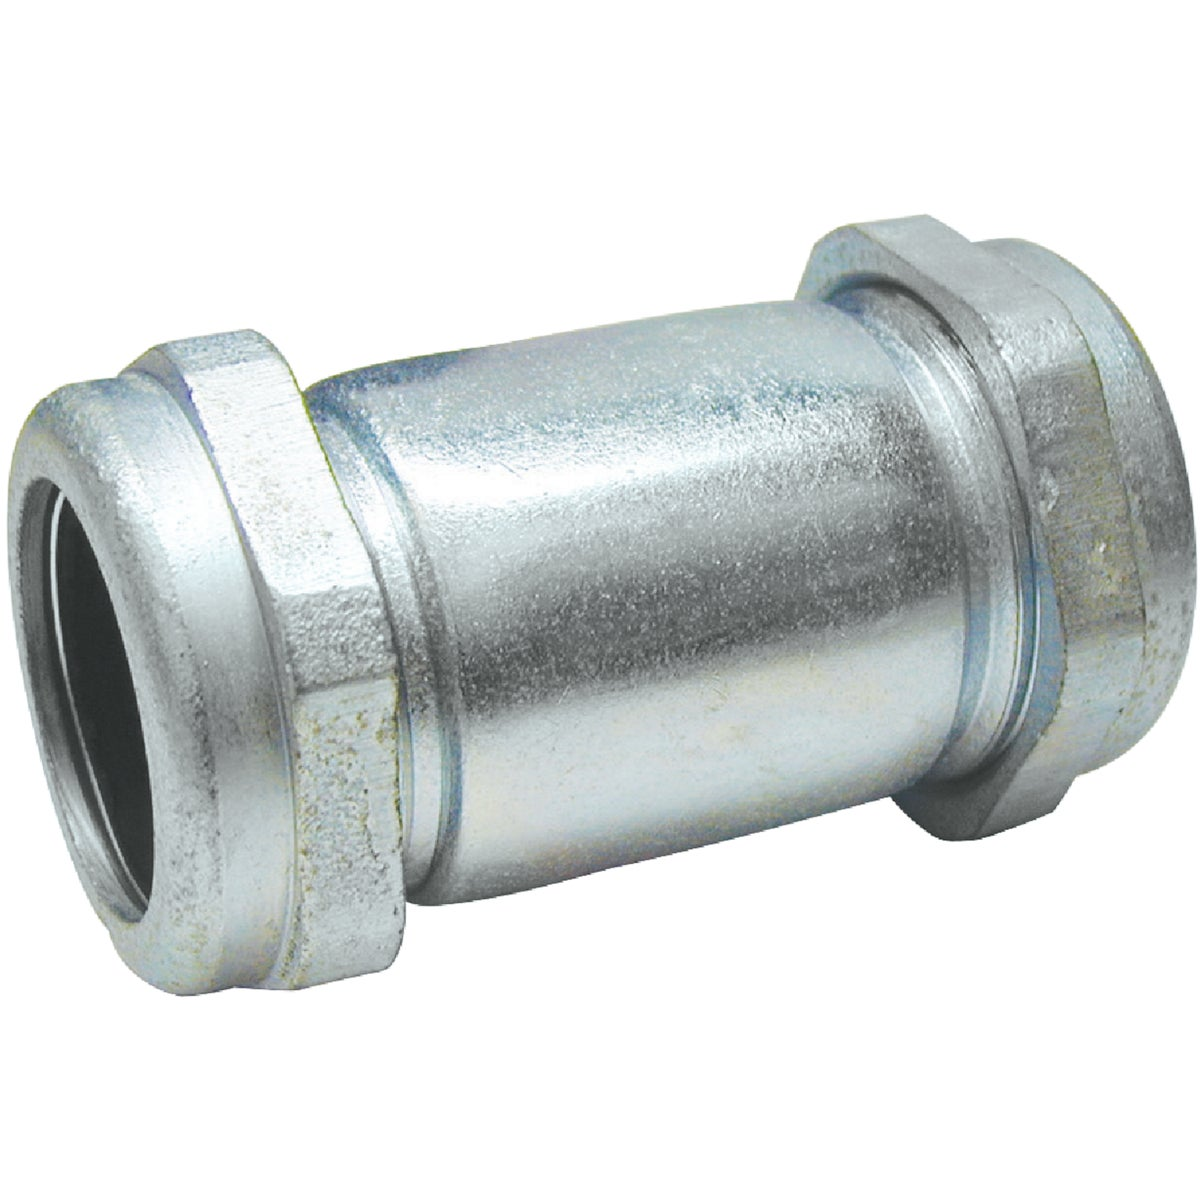 1-1/4X4-1/2GALV COUPLING - 160-006 by Mueller B K